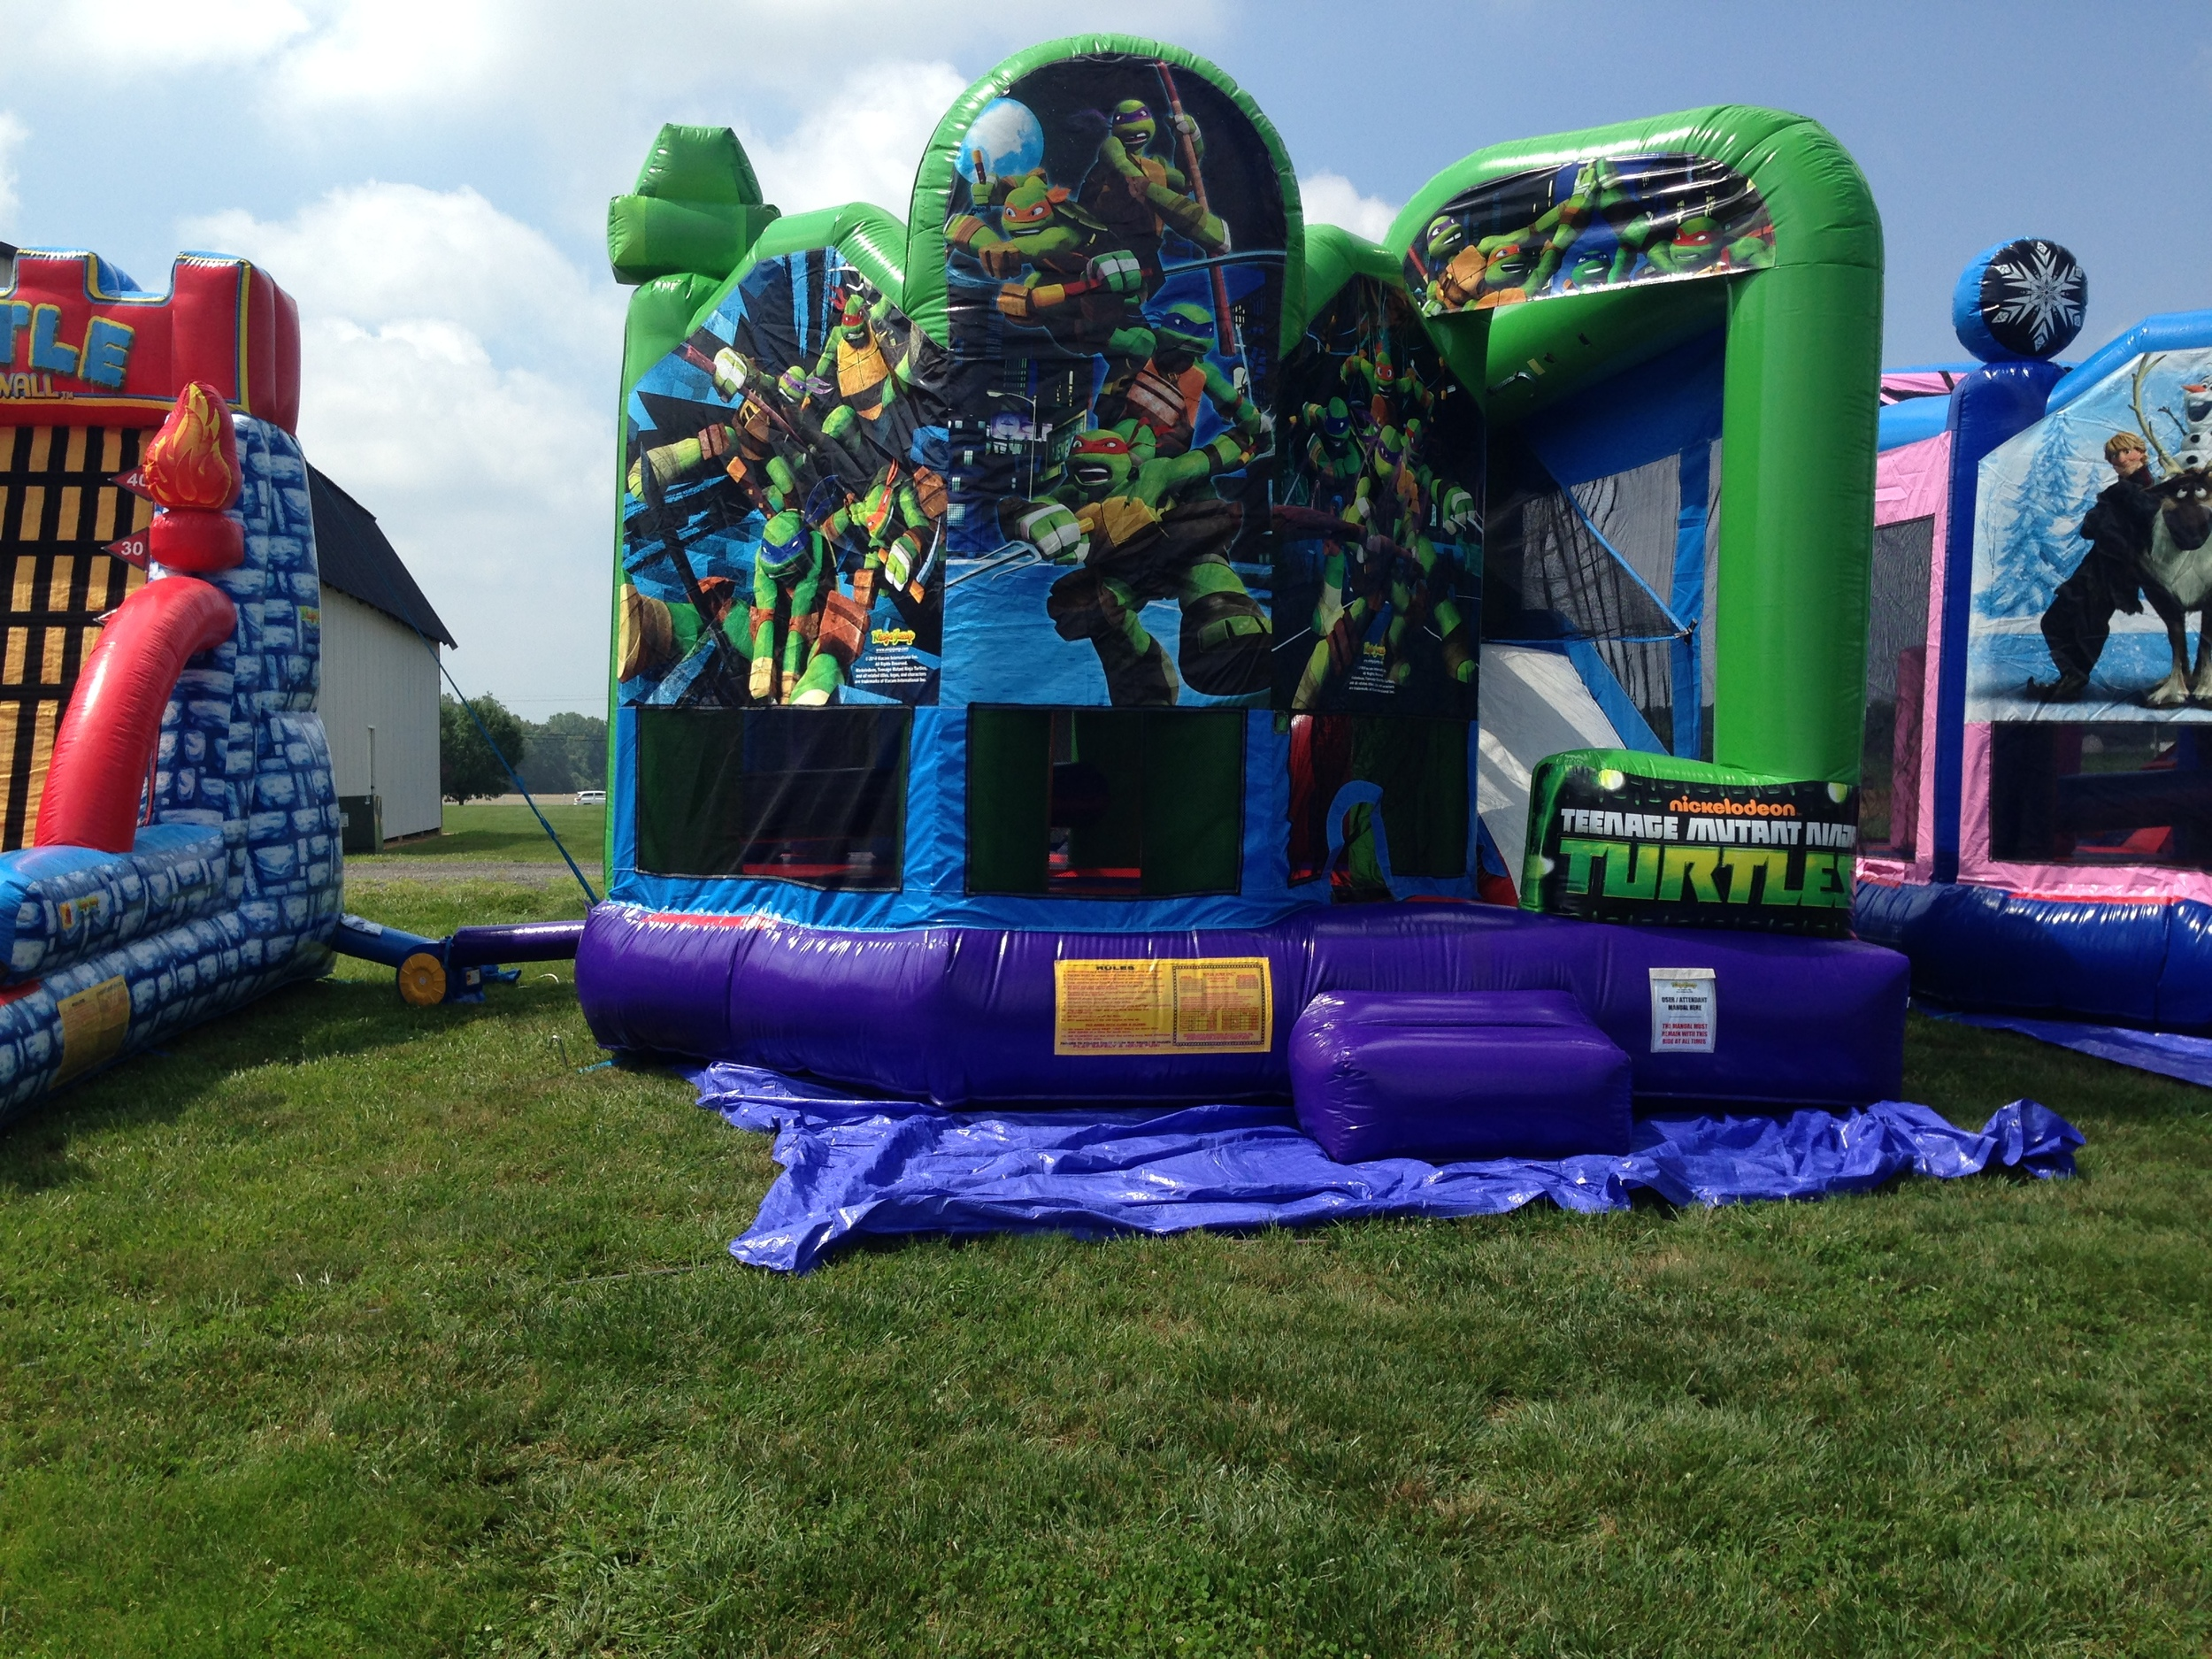 Ninja Turtle 5-in-1 moon bounce